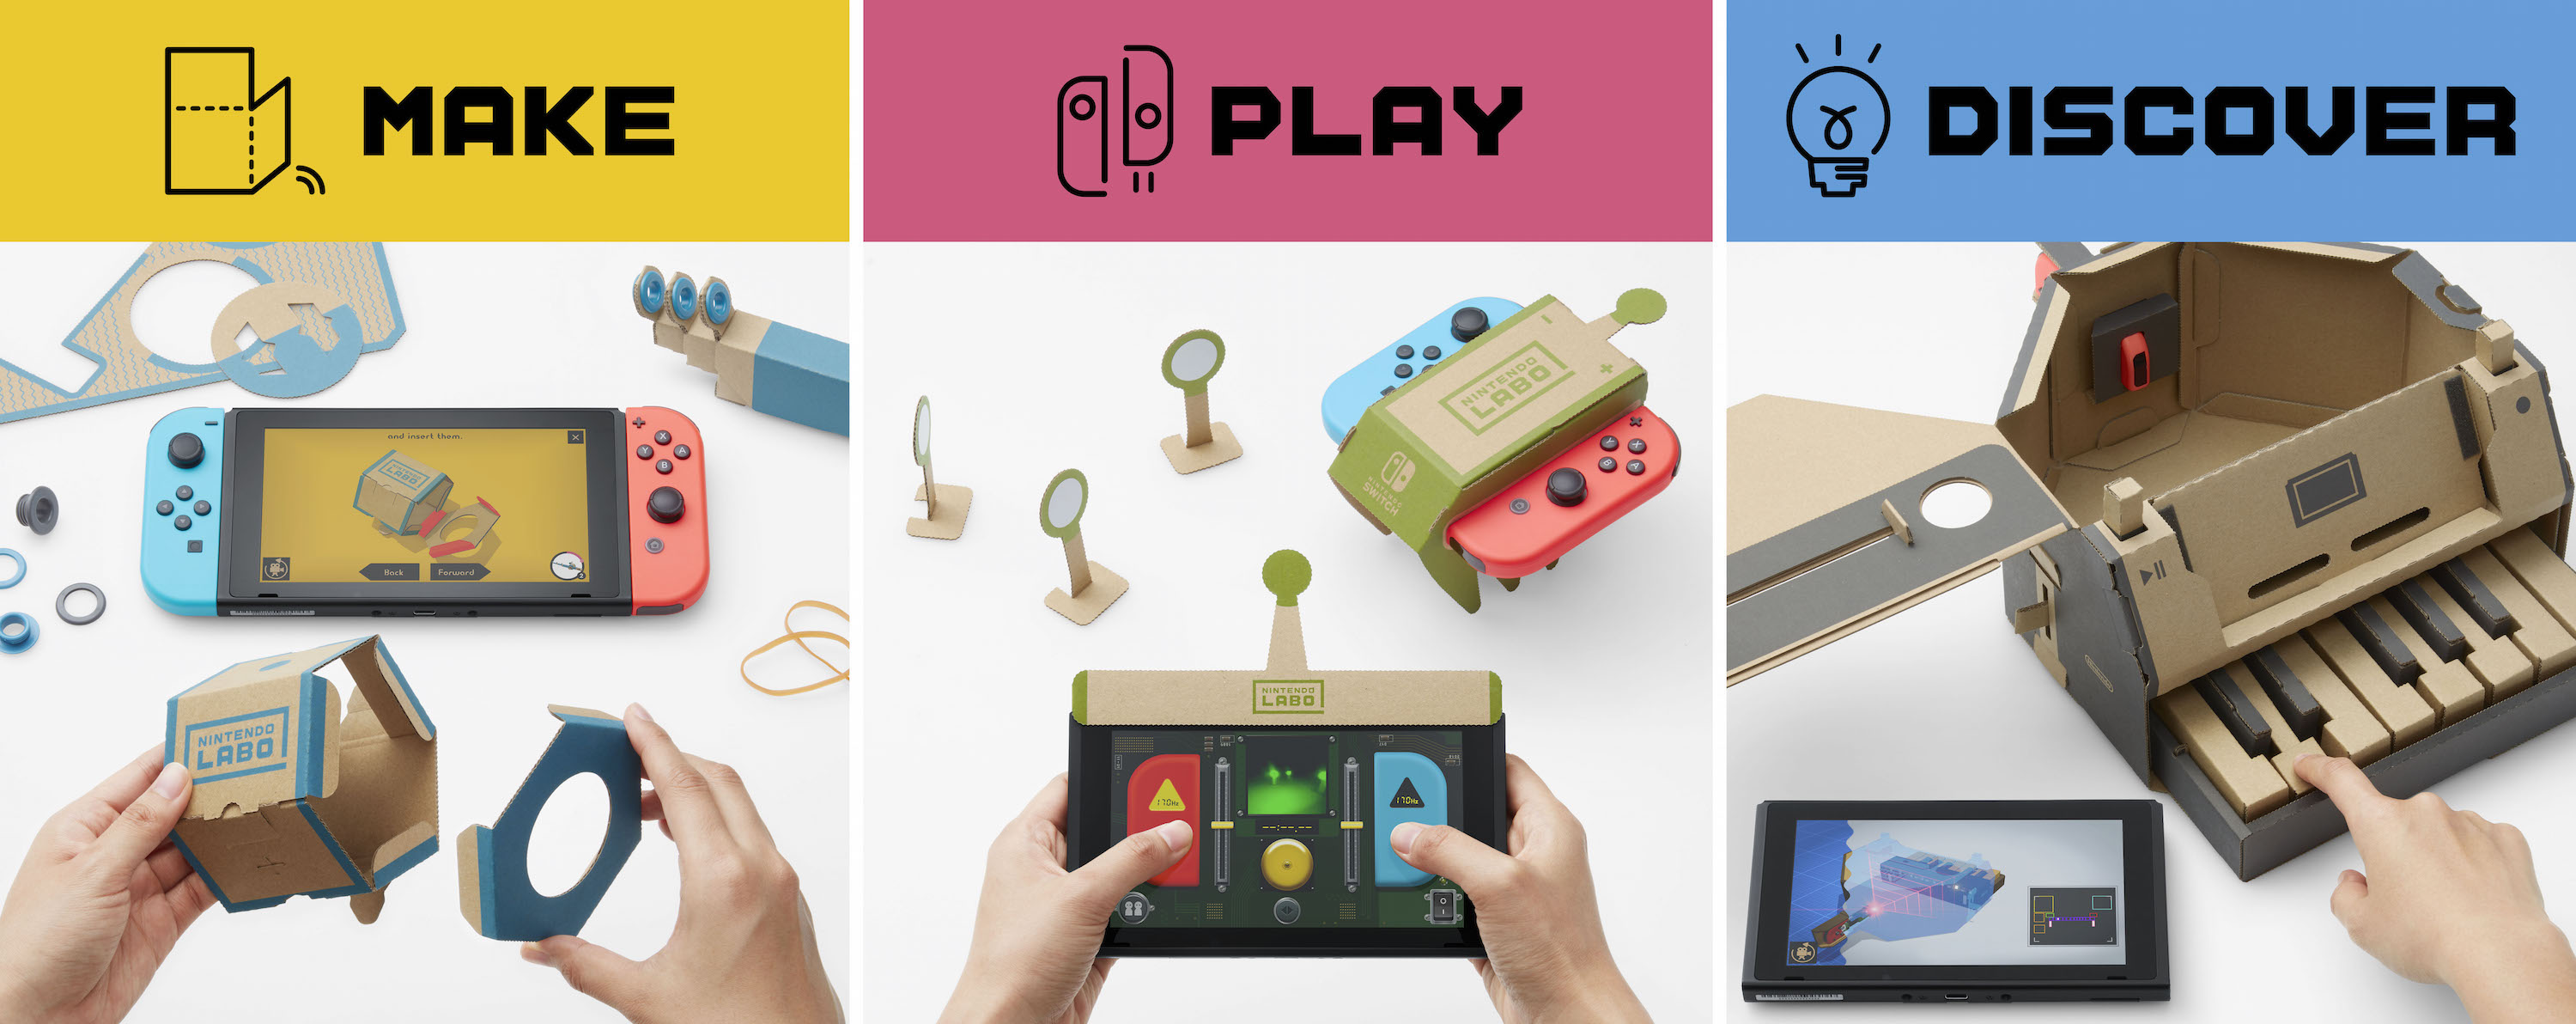 Then Came The Play Aspect Of Labo Each Of The Toy Con Accessories Has An Ociated Interactive Experience That Involves The Joy Con Controllers